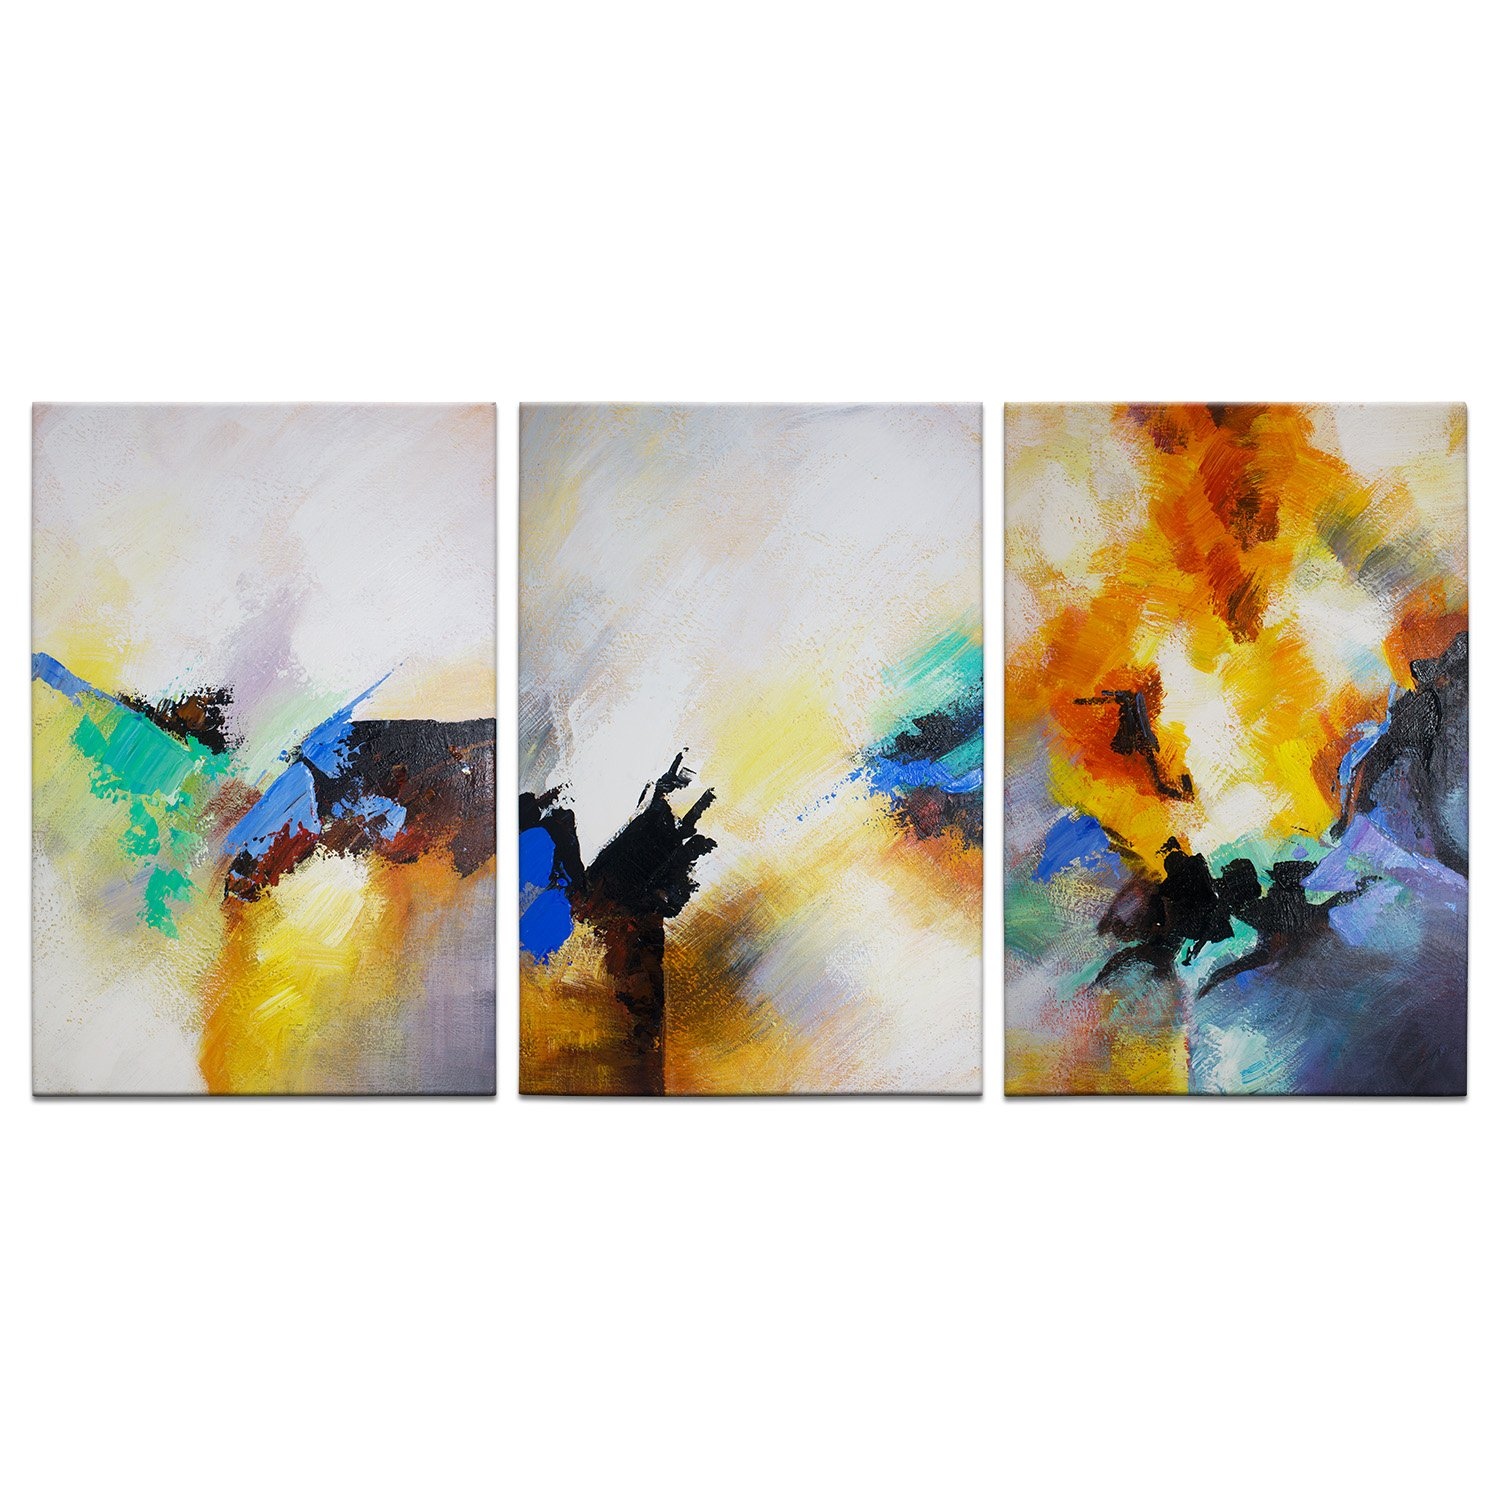 IARTS Abstract Wall Art for Home by Handmade Contemporary Oil Paintings for Living Room Decoration with Frame and Ready to Hang, 24 X 48 Inches, Set of 3 for Multiple Places